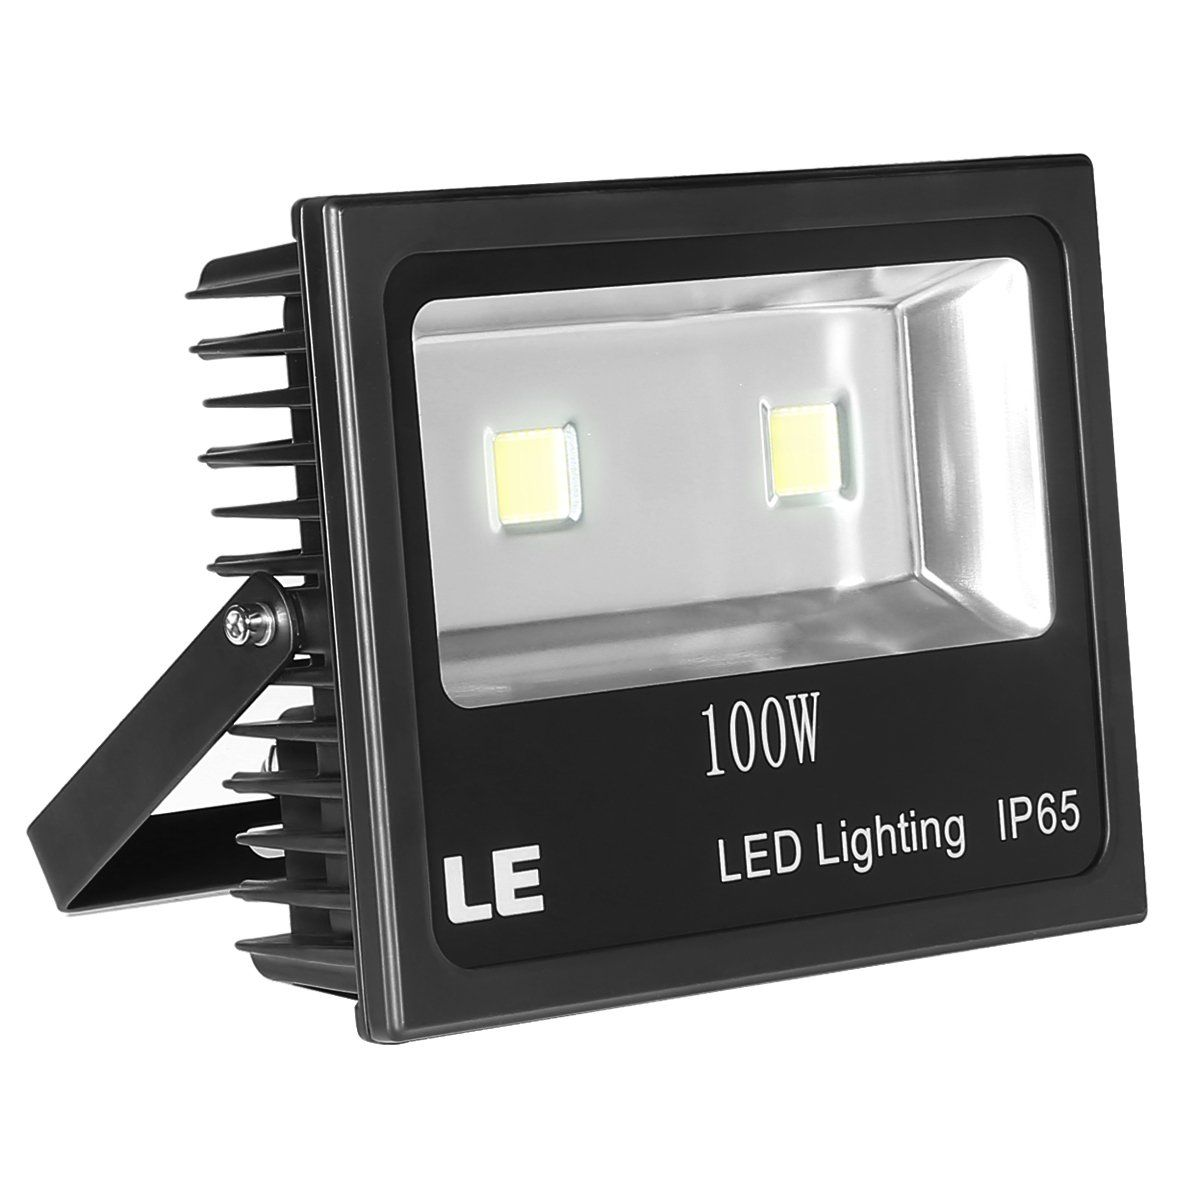 Le Outdoor Led Flood Light 100w 10150lm Ip65 Waterproof 250w Hps Bulb Equivalent Daylight White 6000k Led Flood Lights Outdoor Flood Lights Security Lights